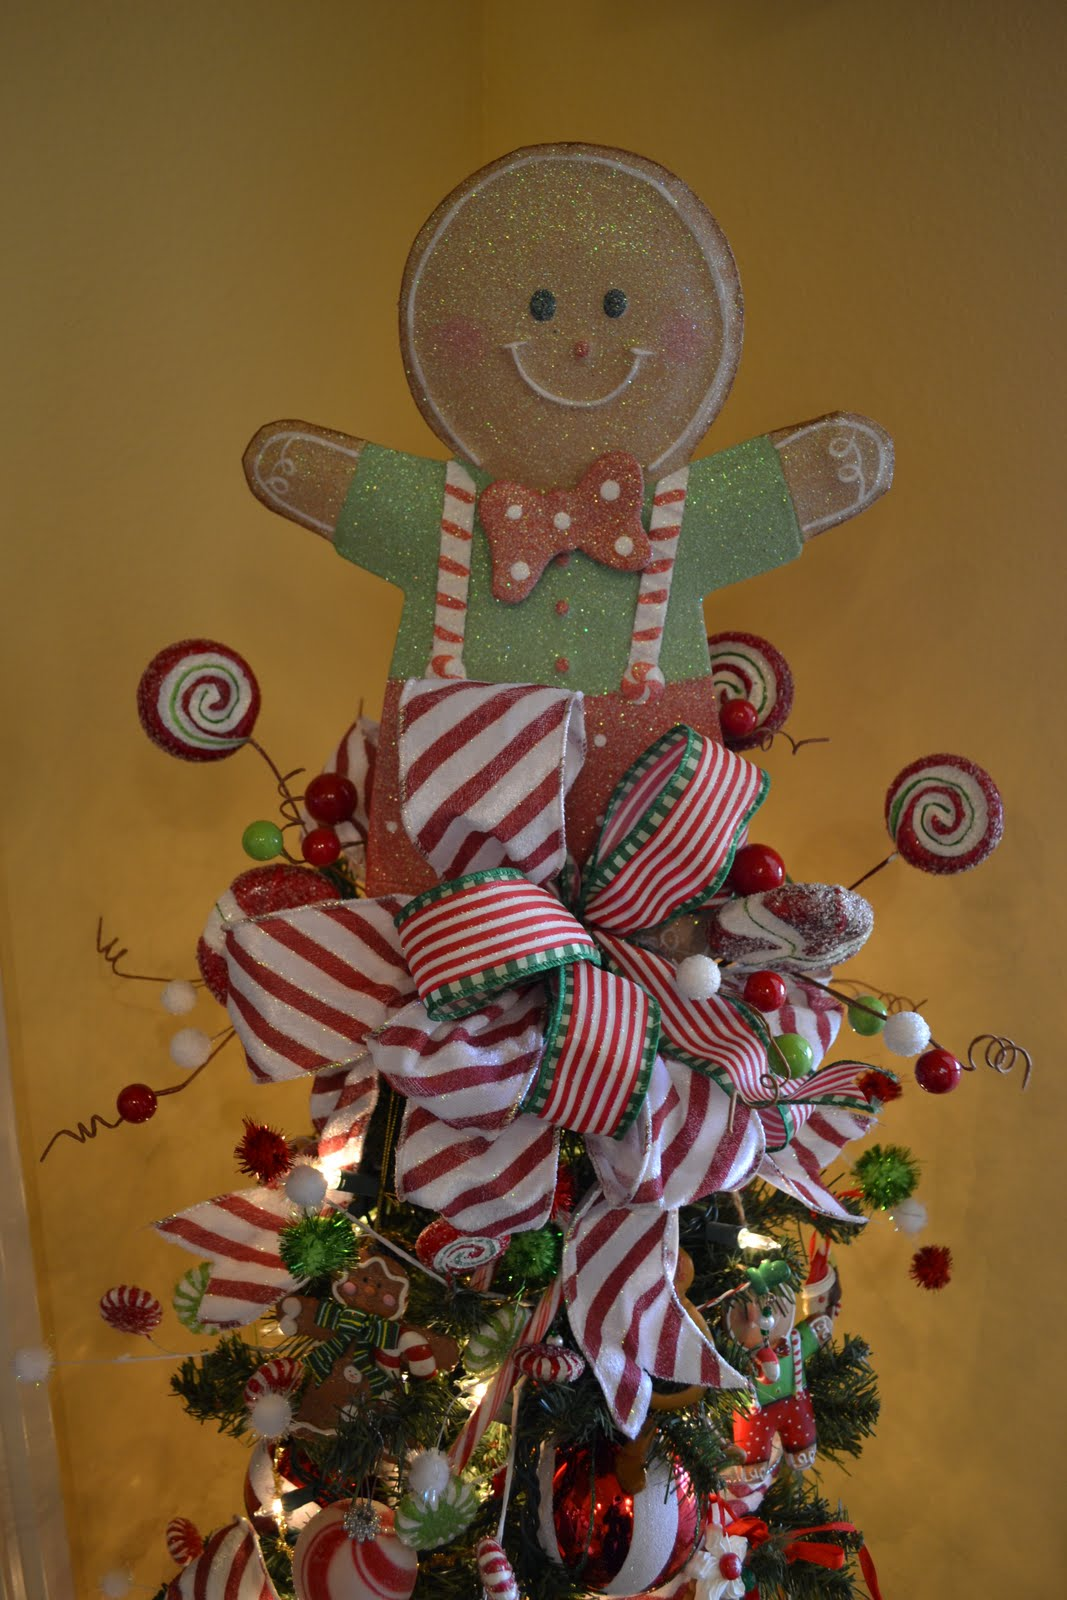 Kristen's Creations: Gingerbread Decorations, Etsy Store ...